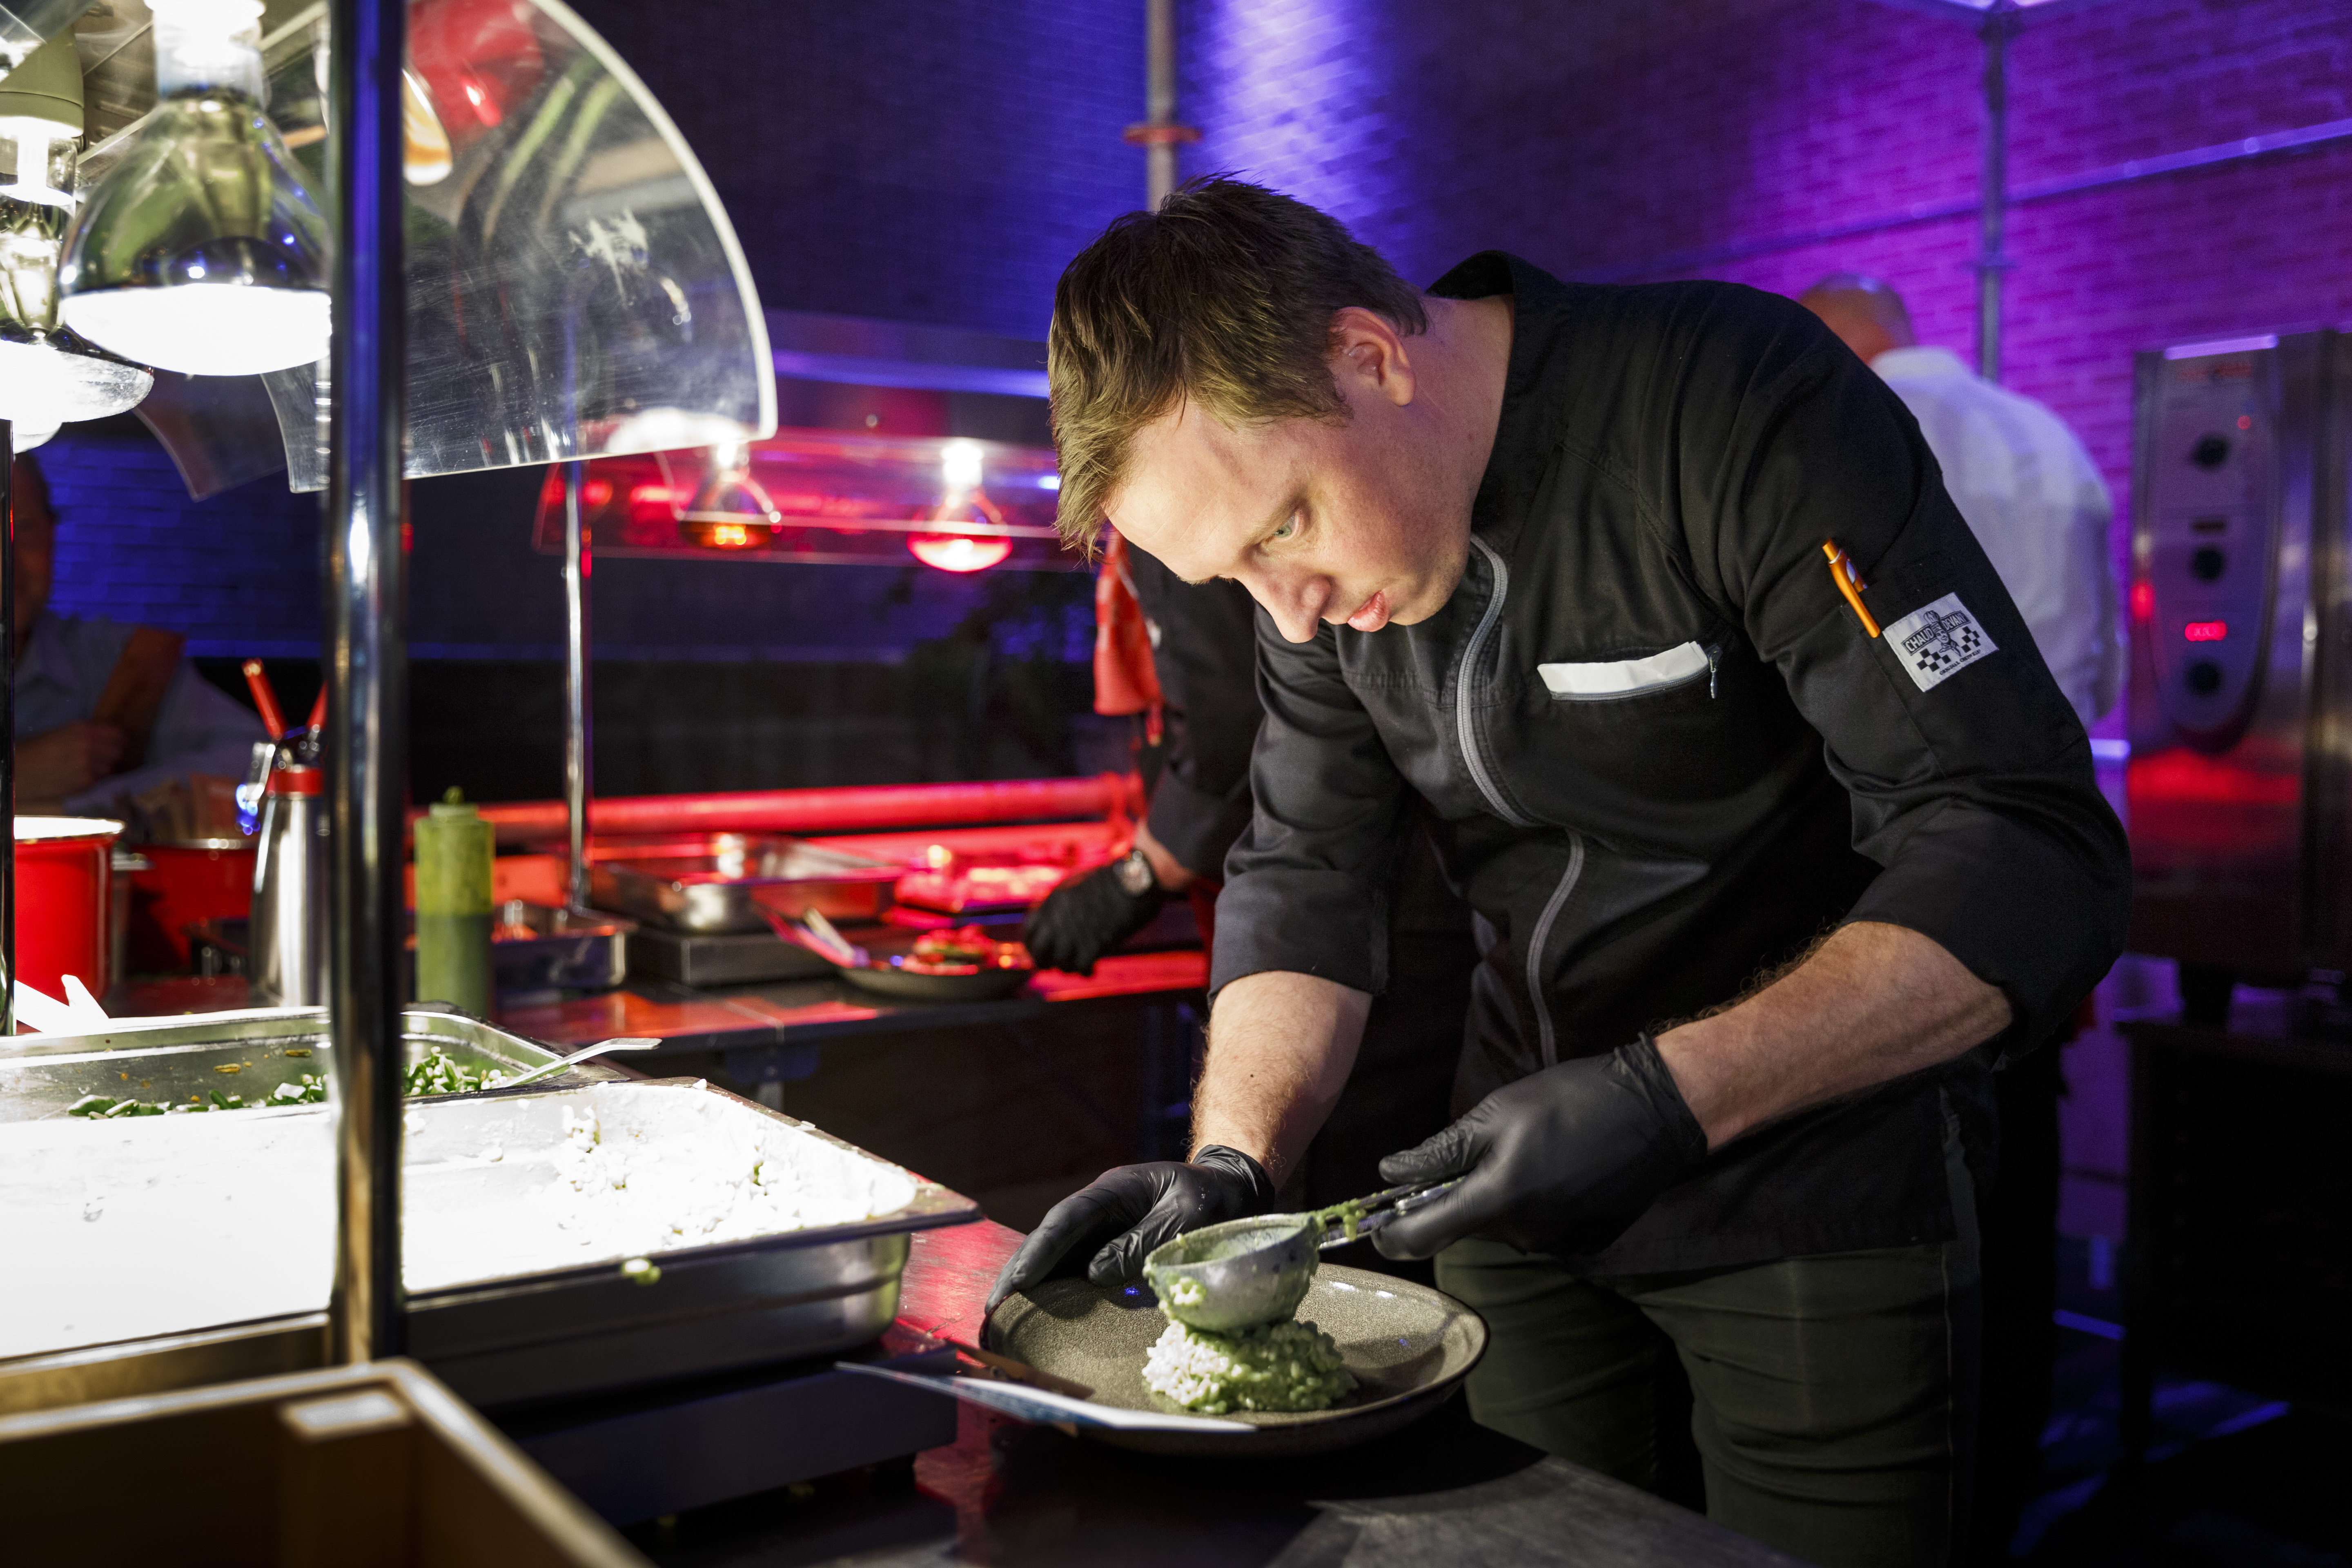 catering - cateringaanbod